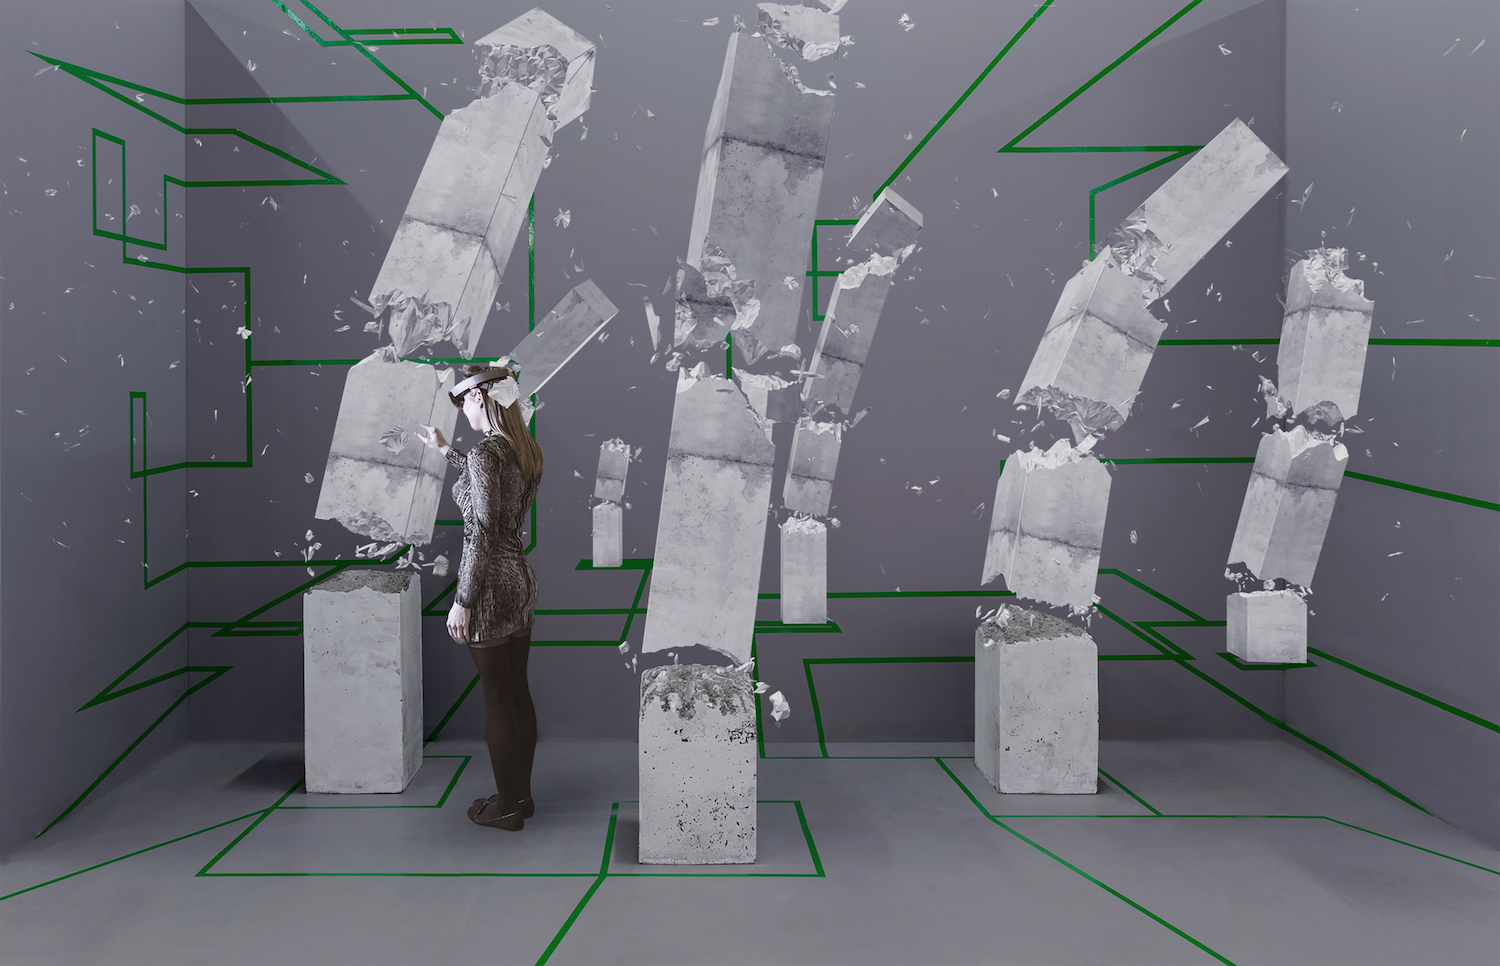 Studio Drift, Concrete Storm, courtesy of Artsy in partnership with Microsoft HoloLens. Photography: Silvia Ros